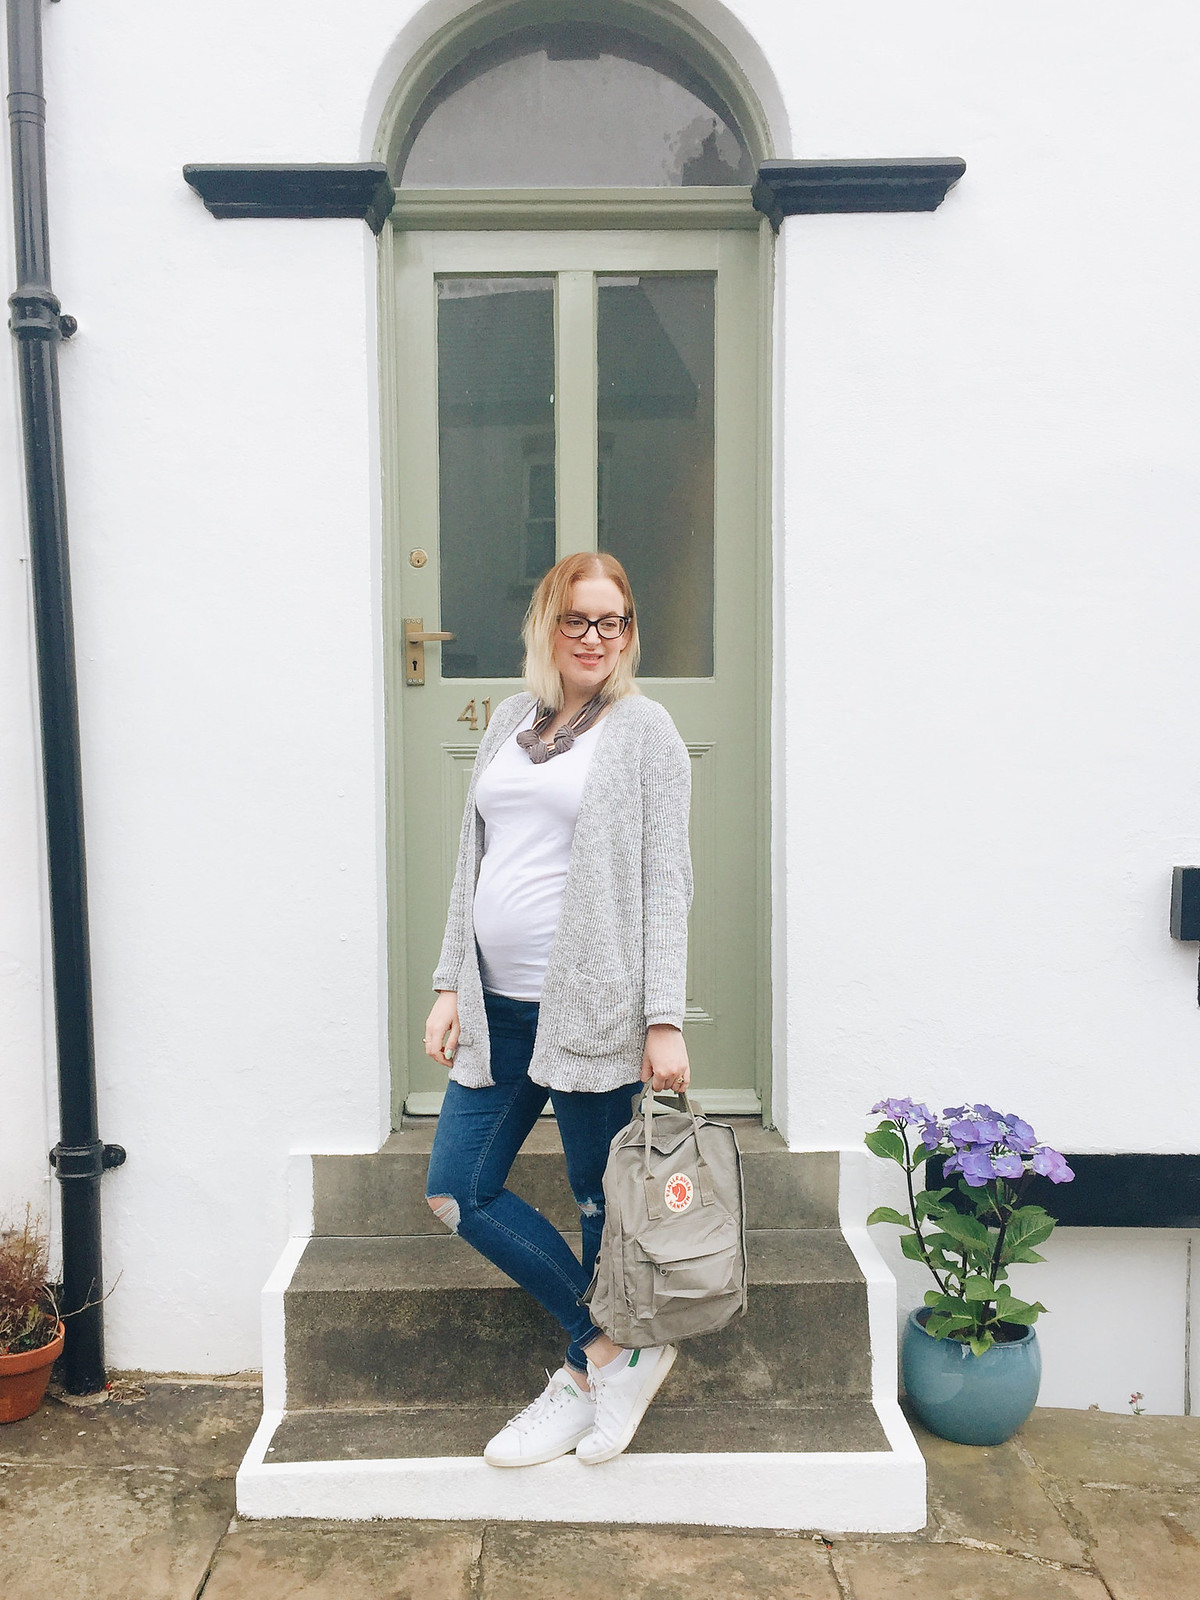 24 weeks pregnant blog update